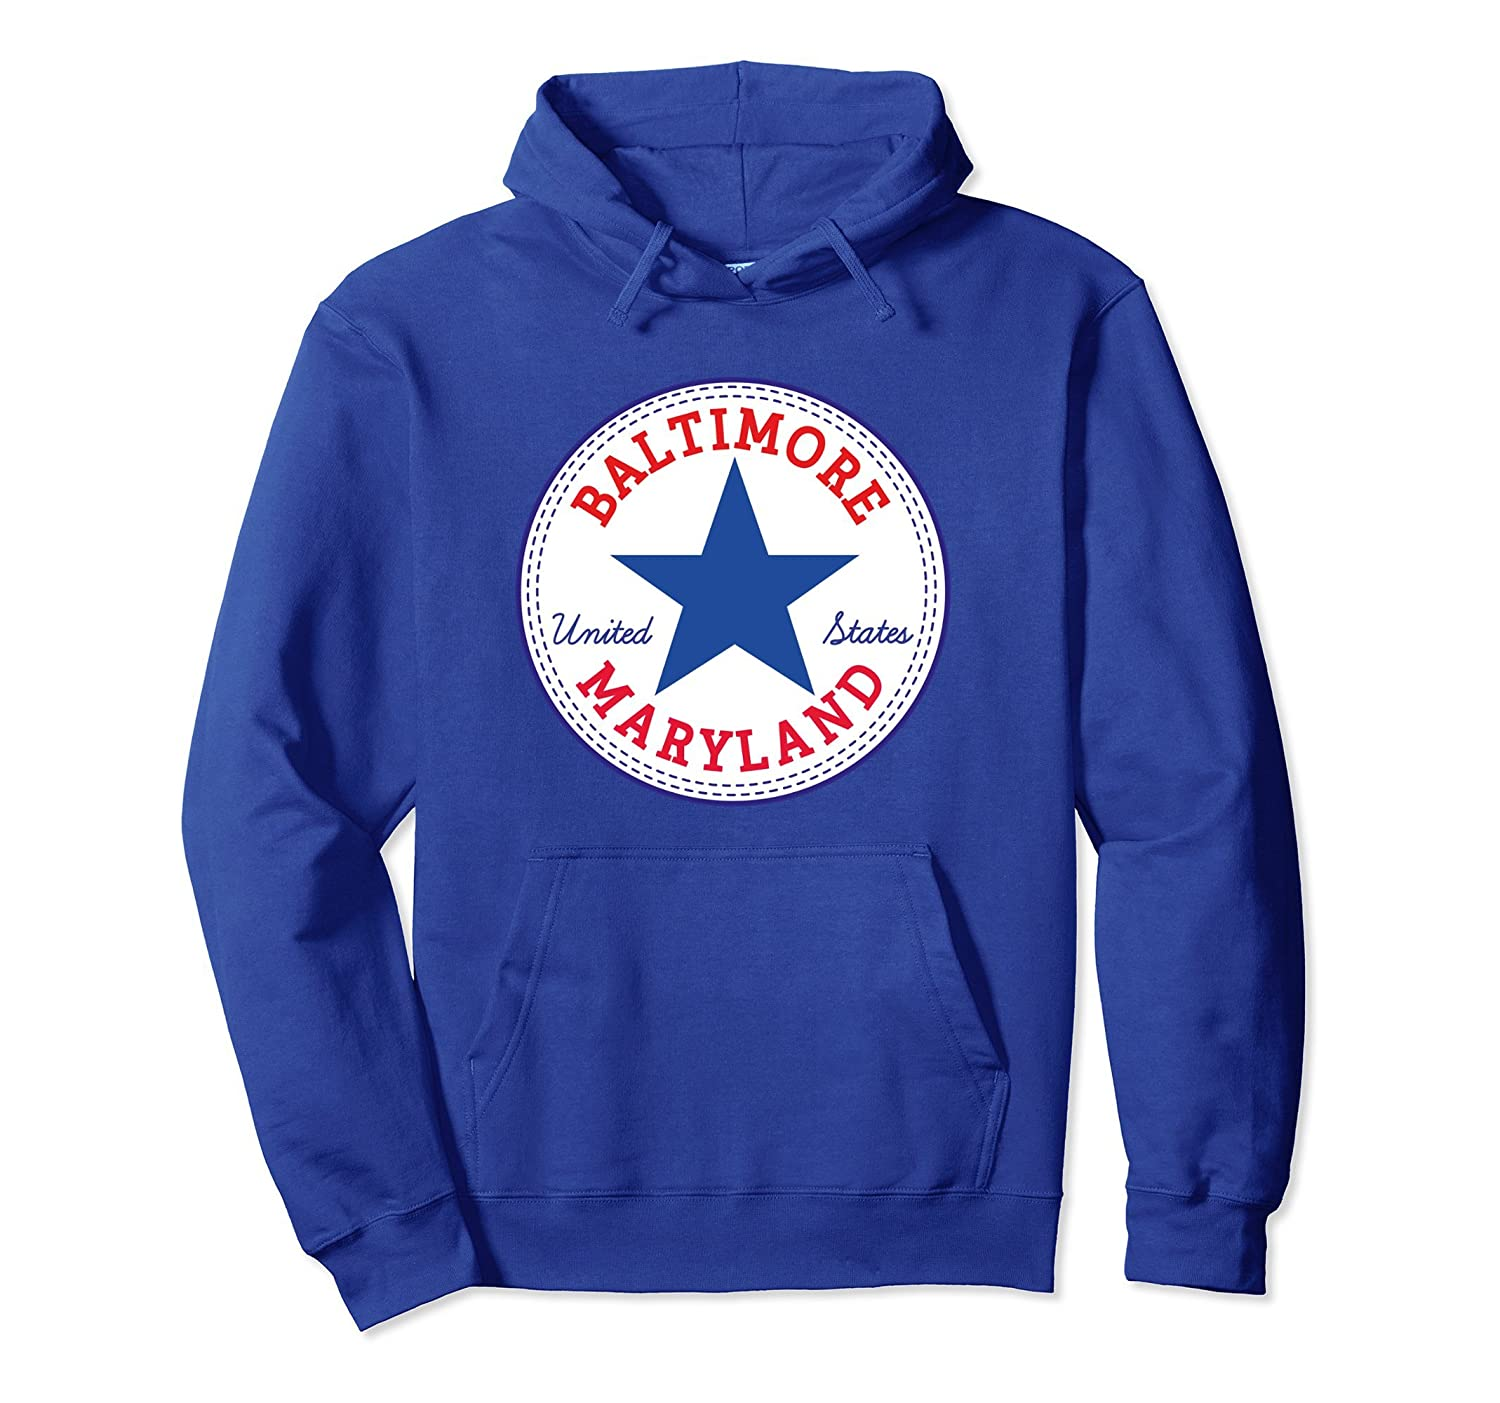 BALTIMORE Maryland USA United States Hoodie Pullover-TH